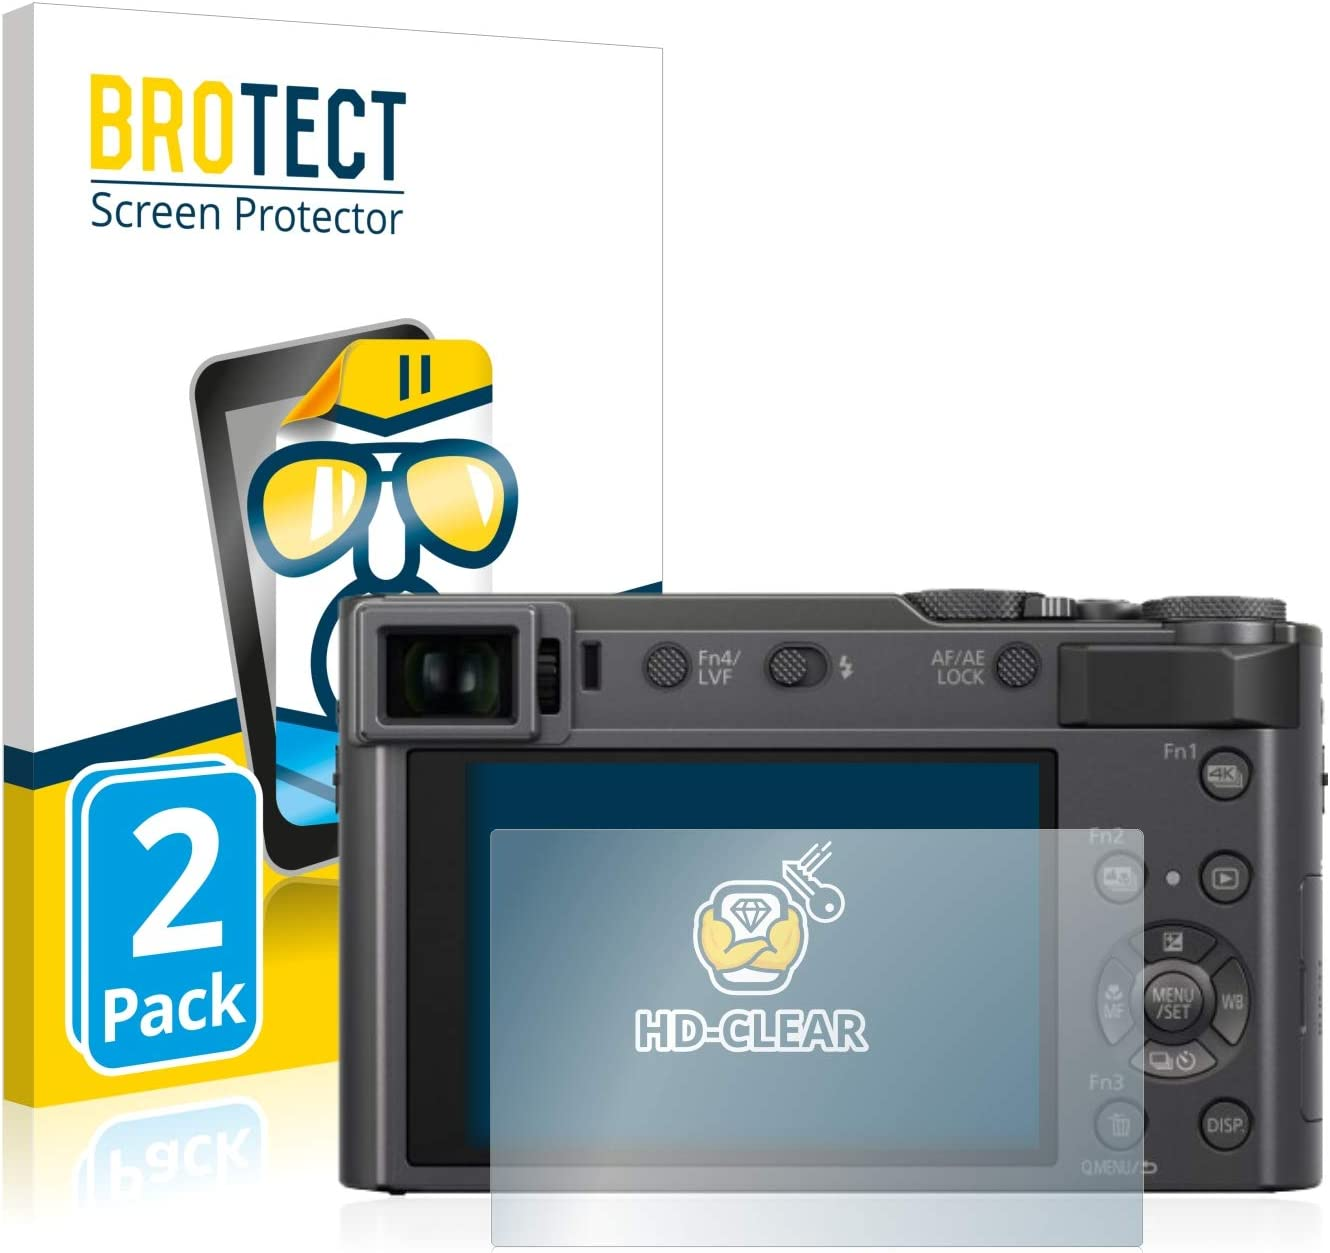 HD-Clear Protection Film brotect 2-Pack Screen Protector compatible with Panasonic Lumix DC-TZ200